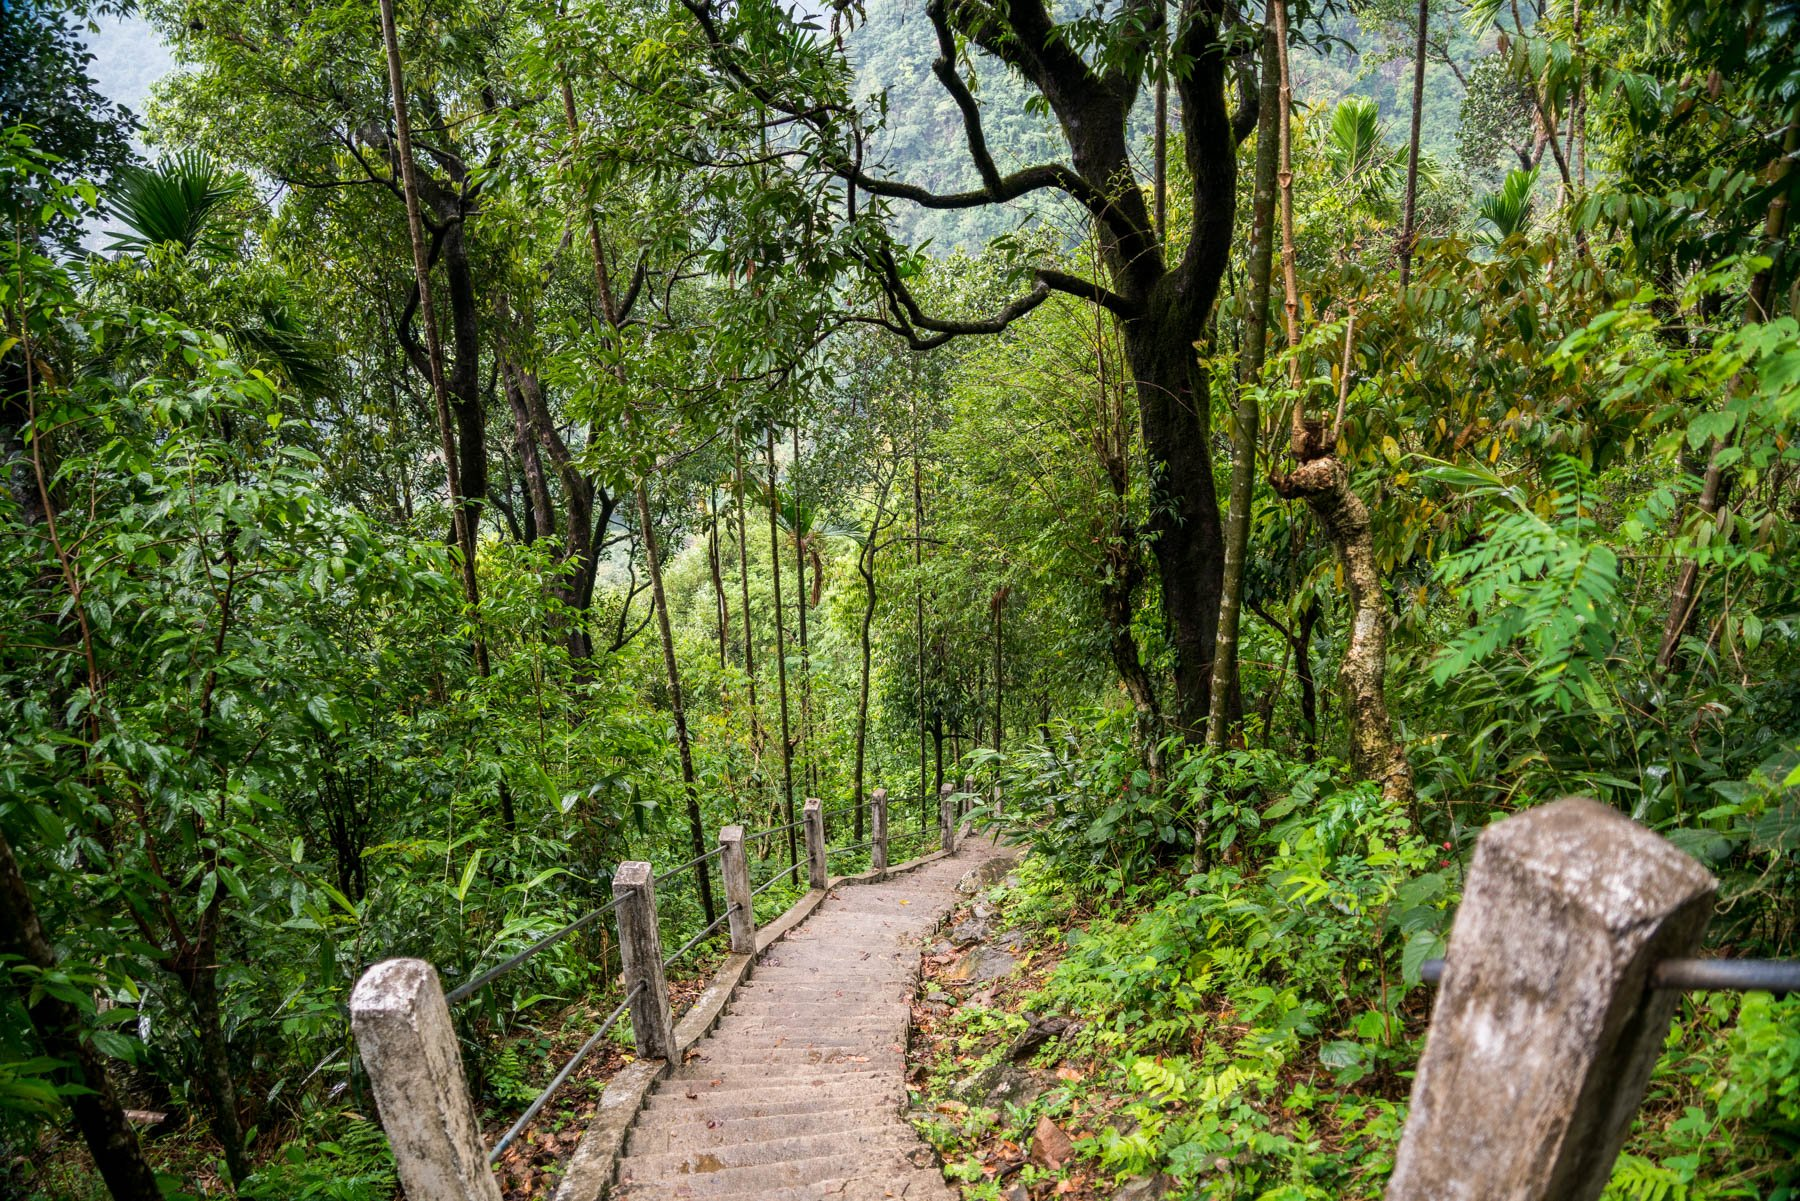 Photo essay of Nongriat and the living root bridges of Meghalaya, India - The cement stairway to Nongriat - Lost With Purpose